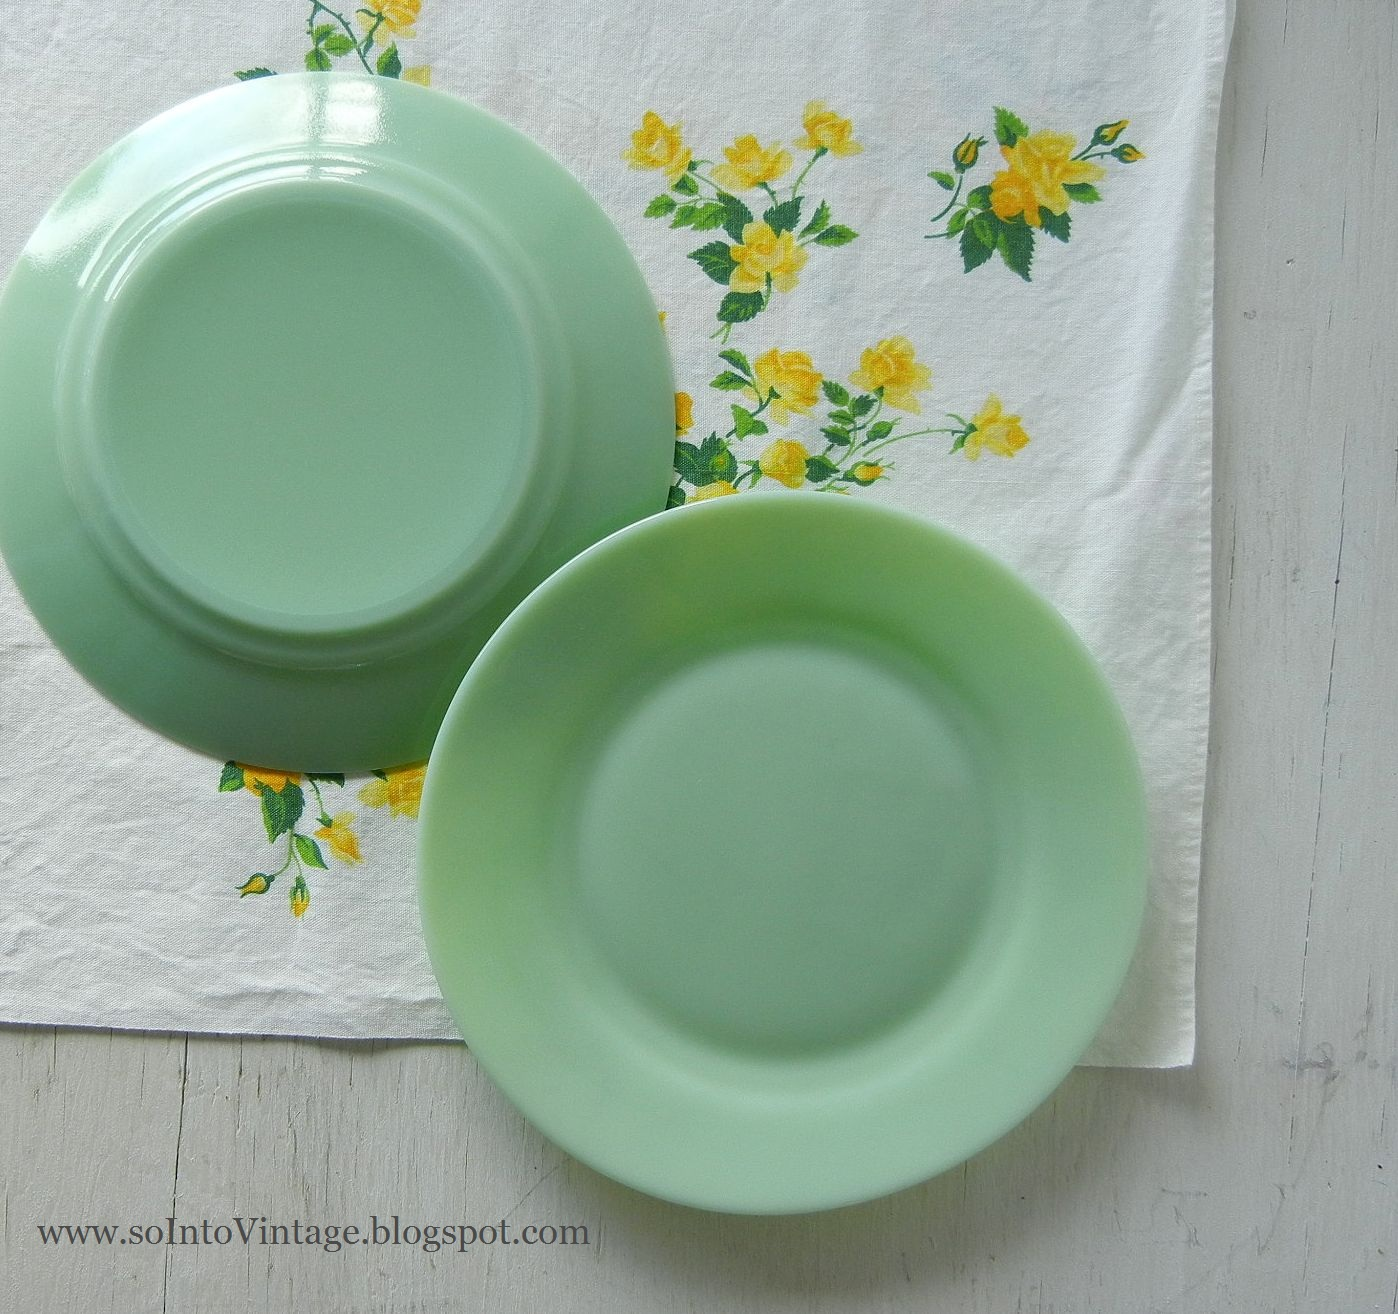 Into Vintage: Jadeite Enthusiasts, Please Stand Up